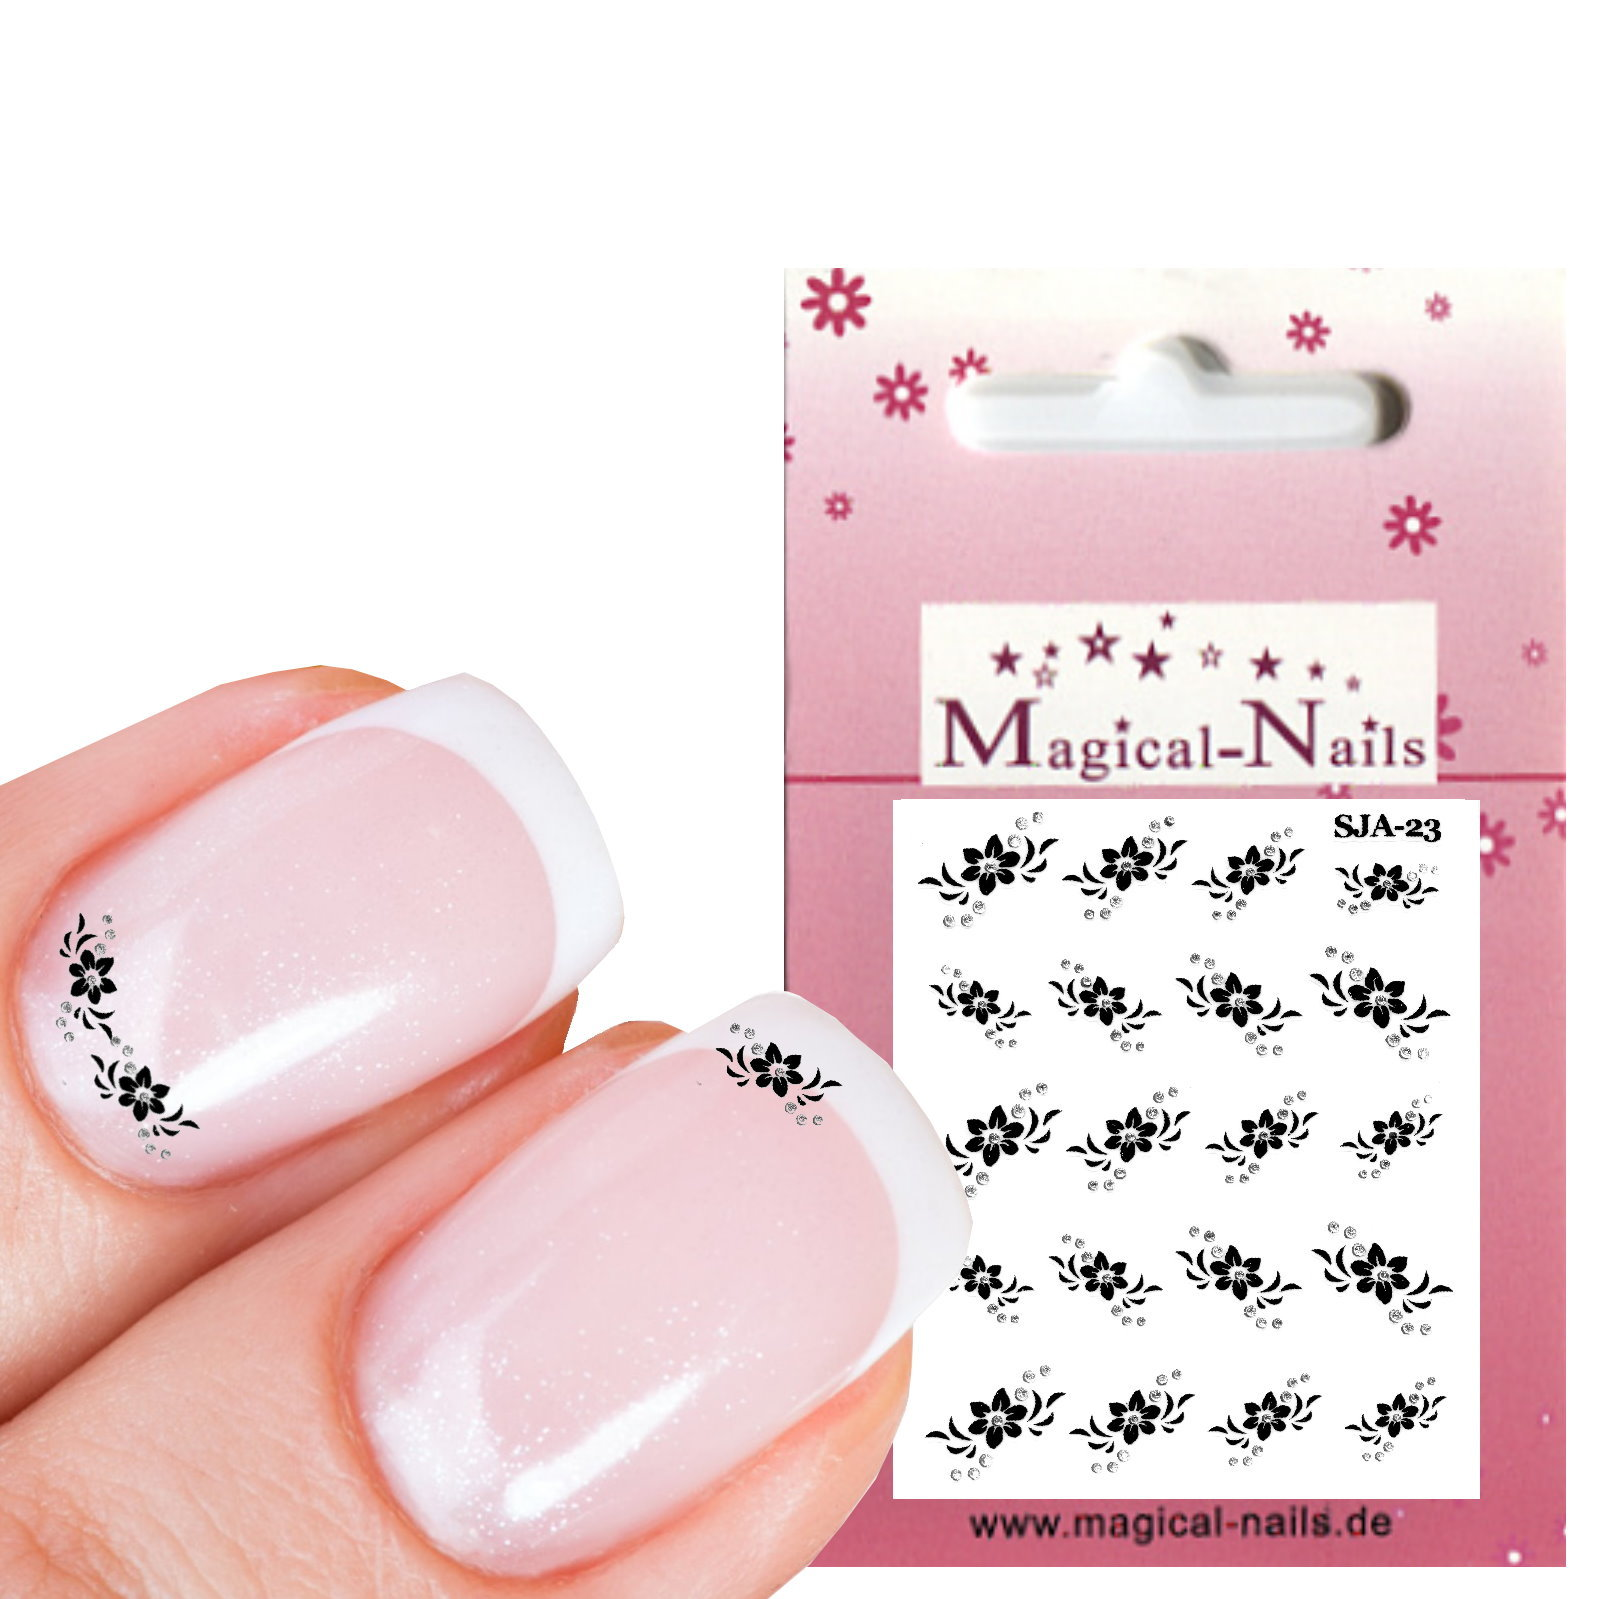 Musternagel_SJA-23_Nail_Sticker_anja_beck_www.magical-nails.de.